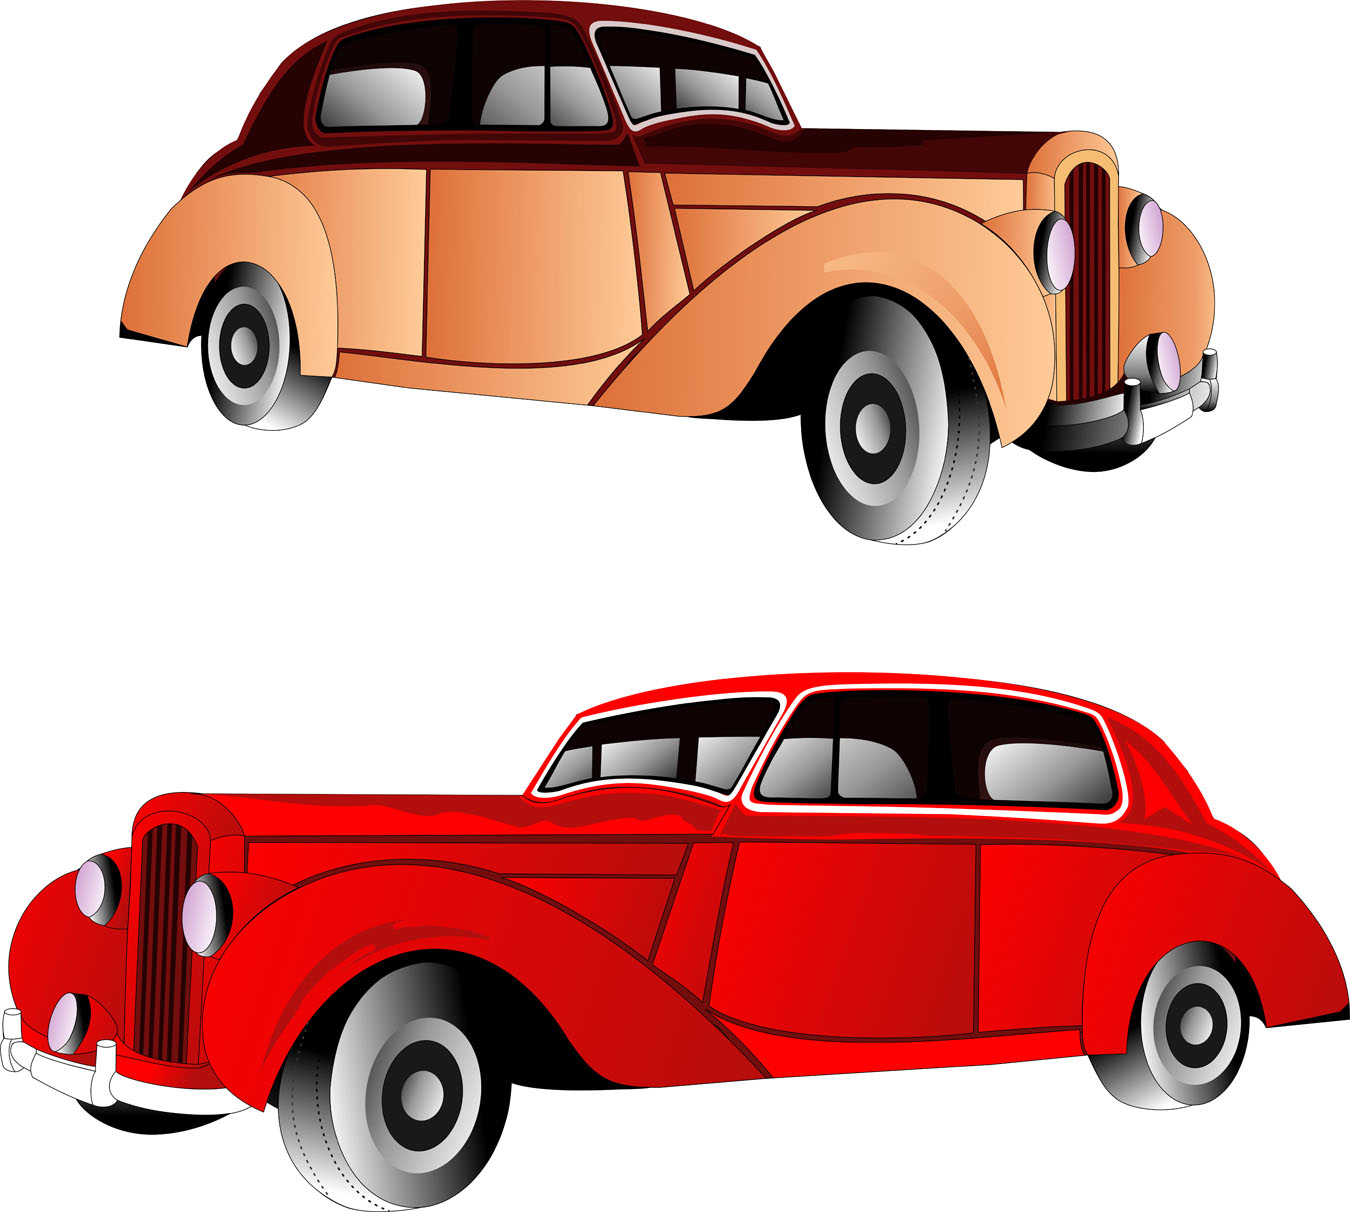 Cars clipart classic. Free car cliparts download